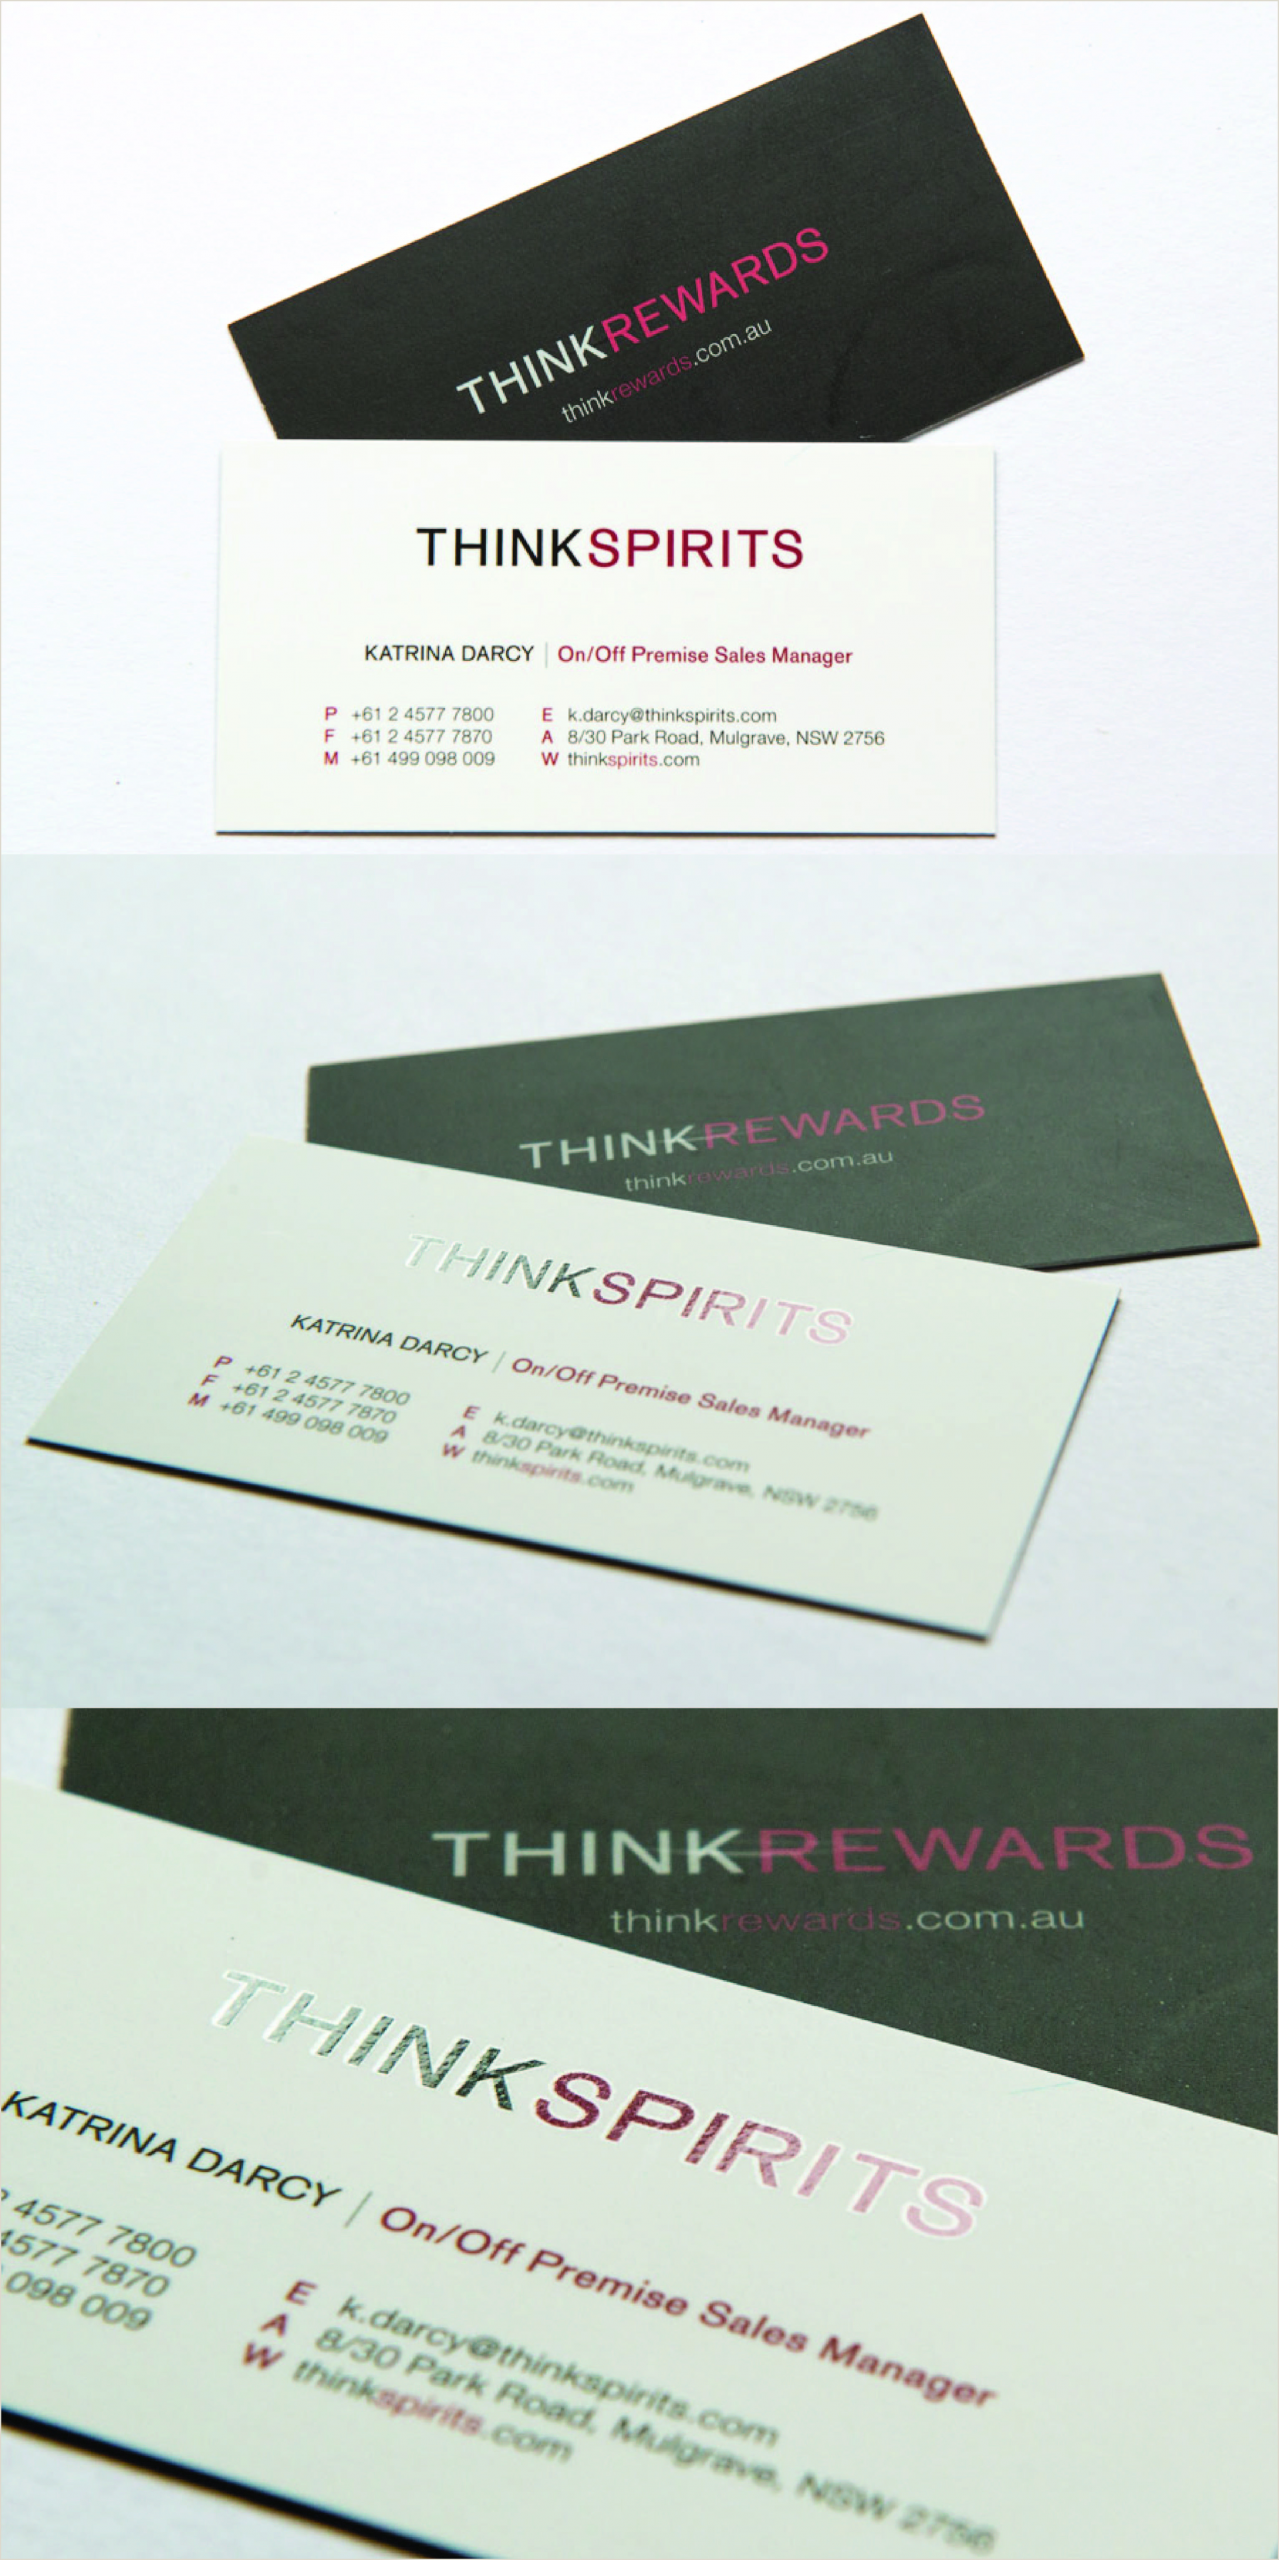 Cheap Unique Business Cards The Economy Business Cards Are The Standard Choice Out Of